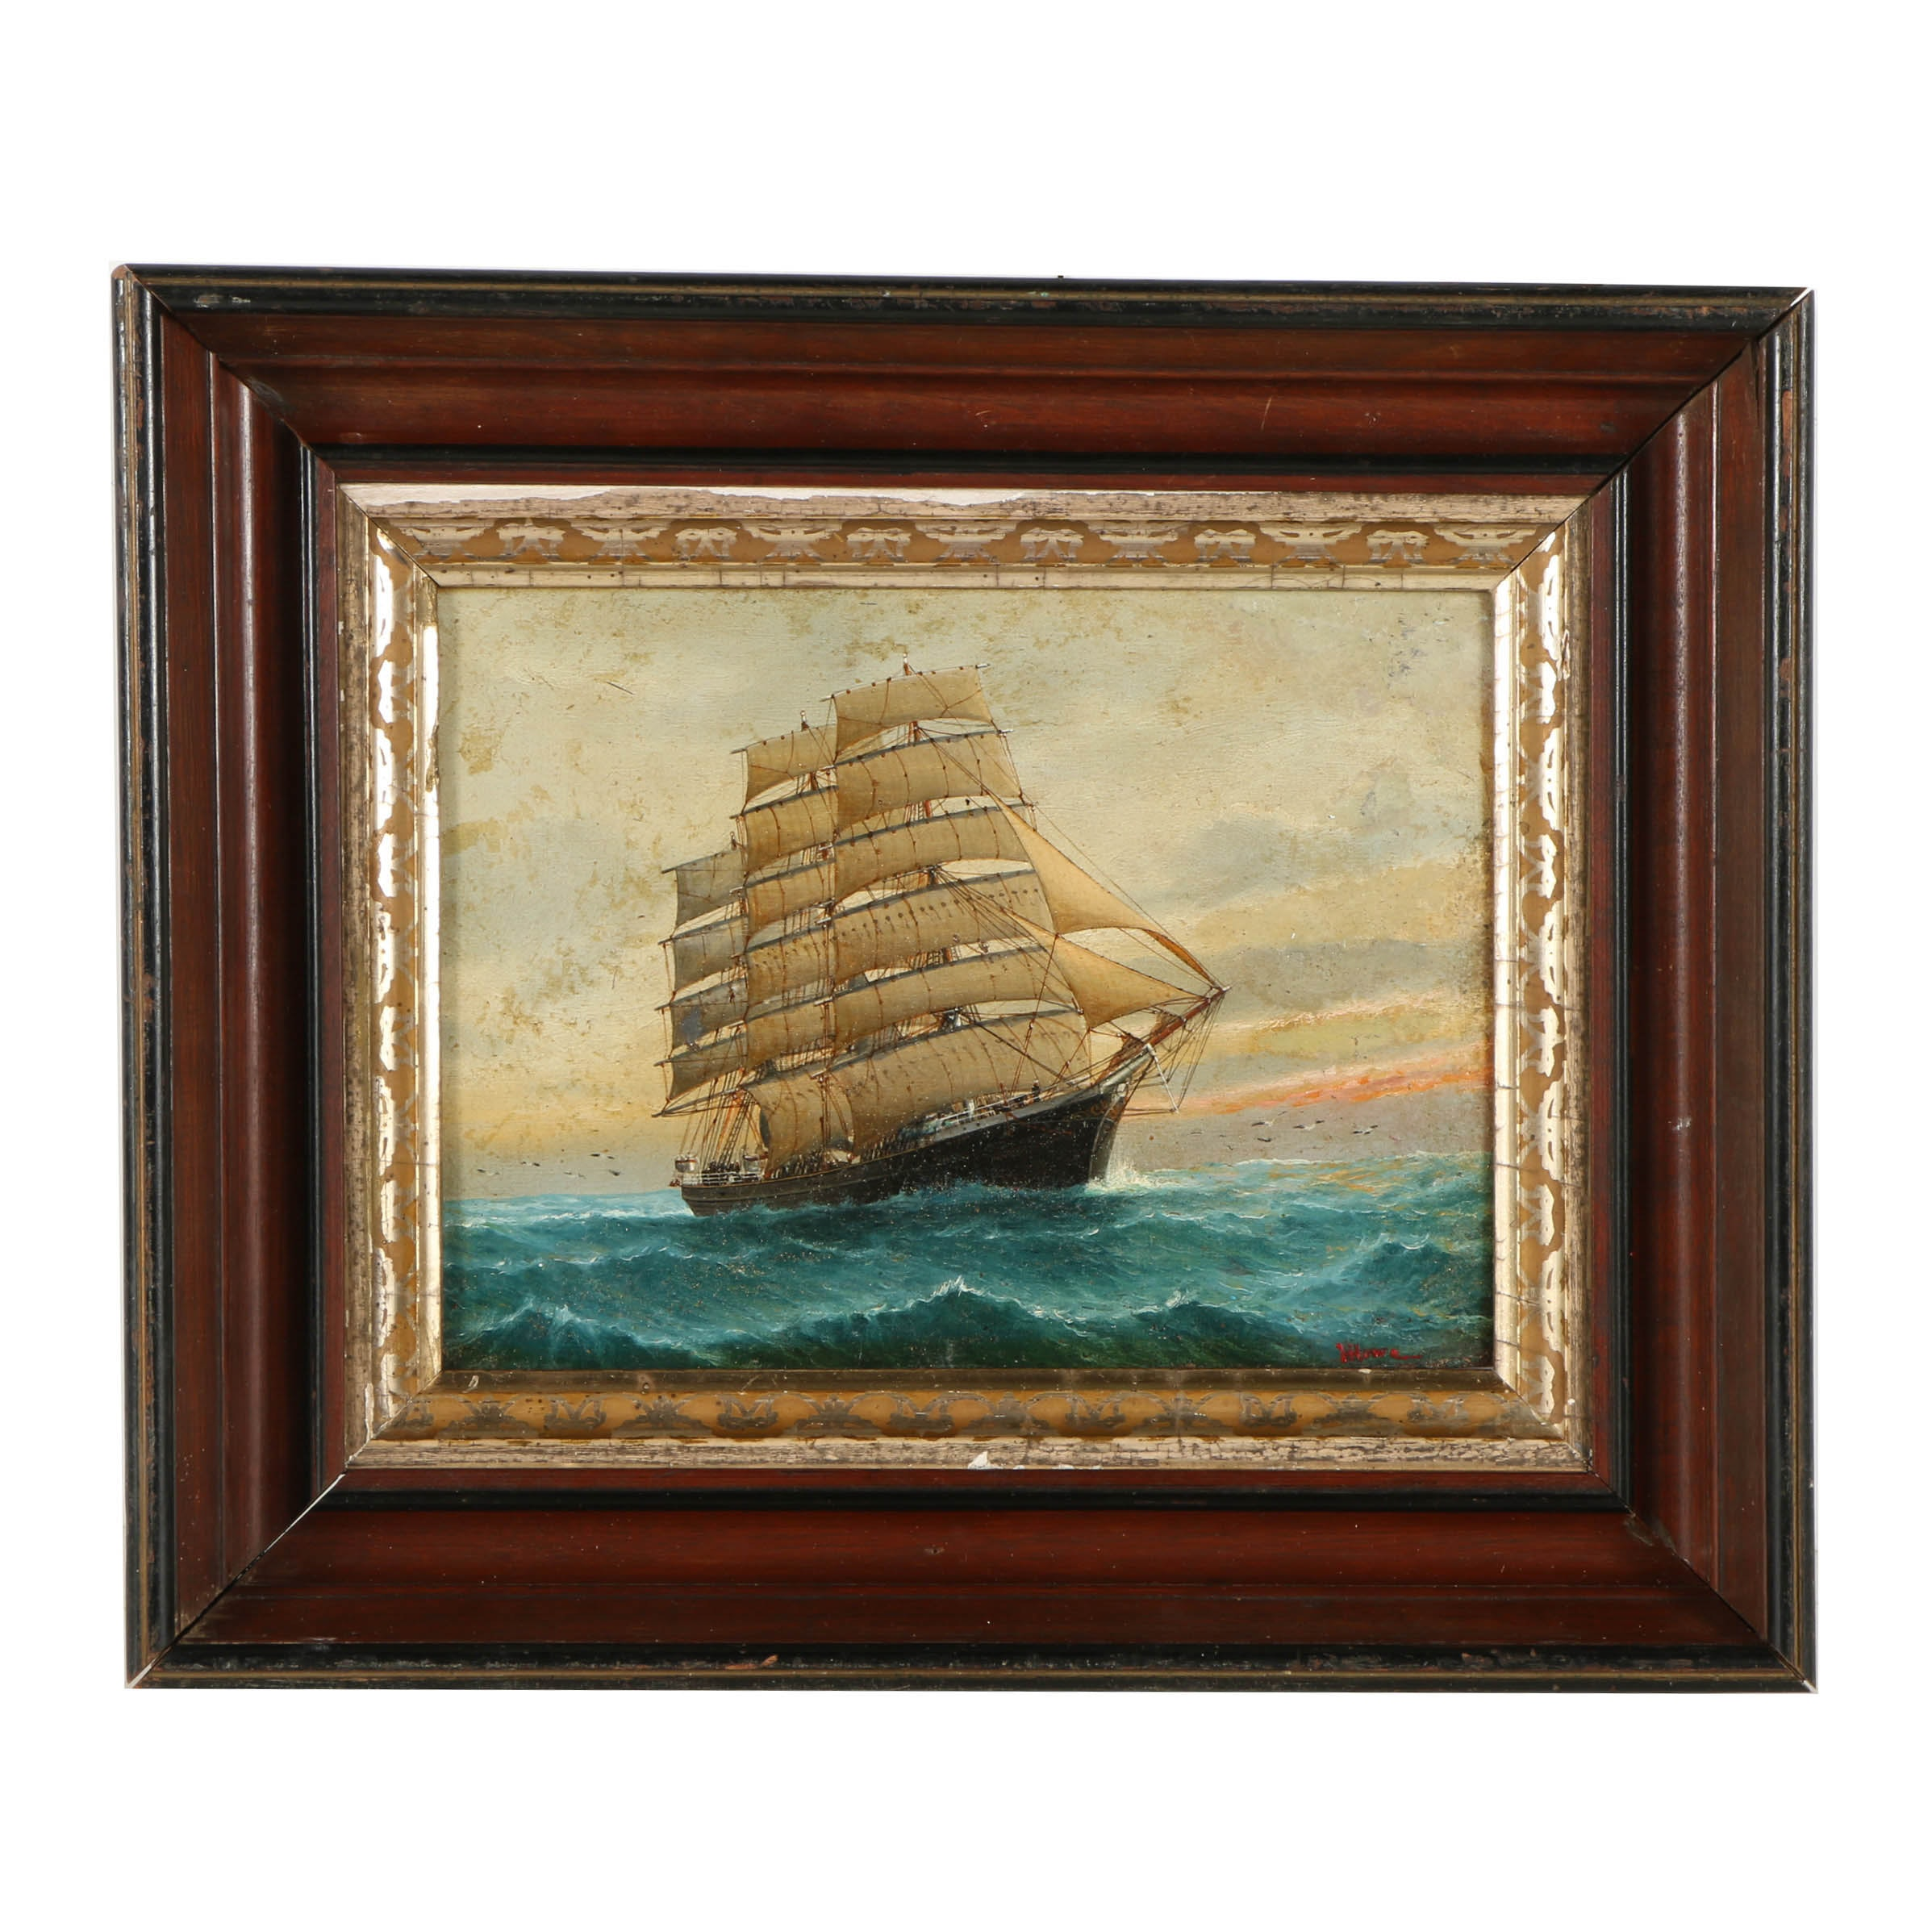 Henry Harlow Howe Oil Painting on Board of a Galleon at Sea